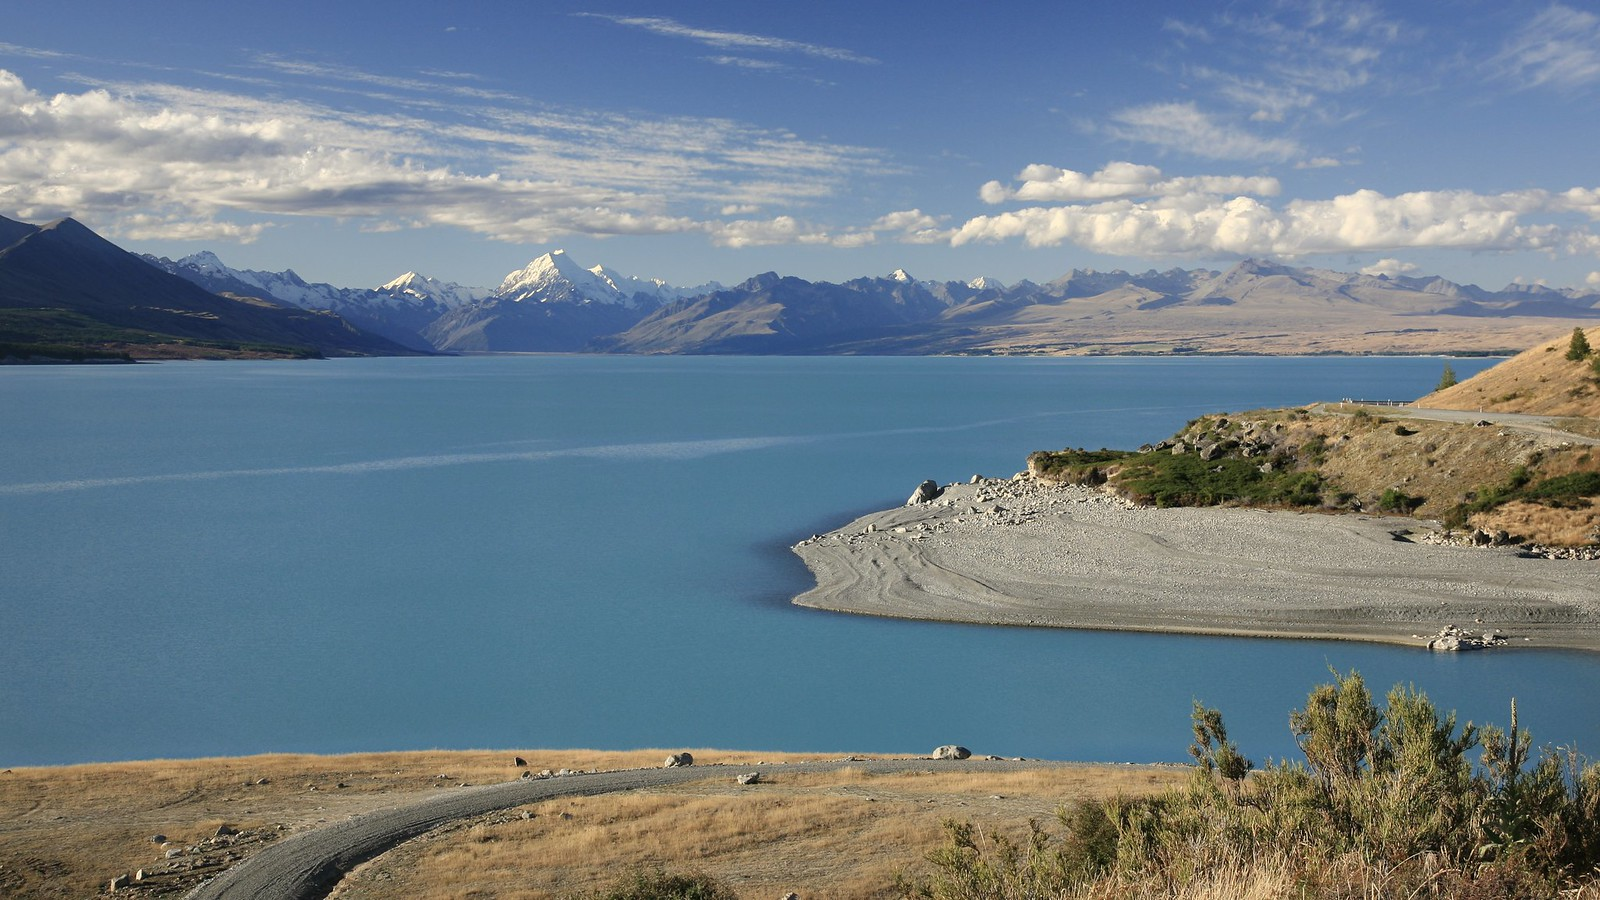 Lake Pukaki, Mount Cook